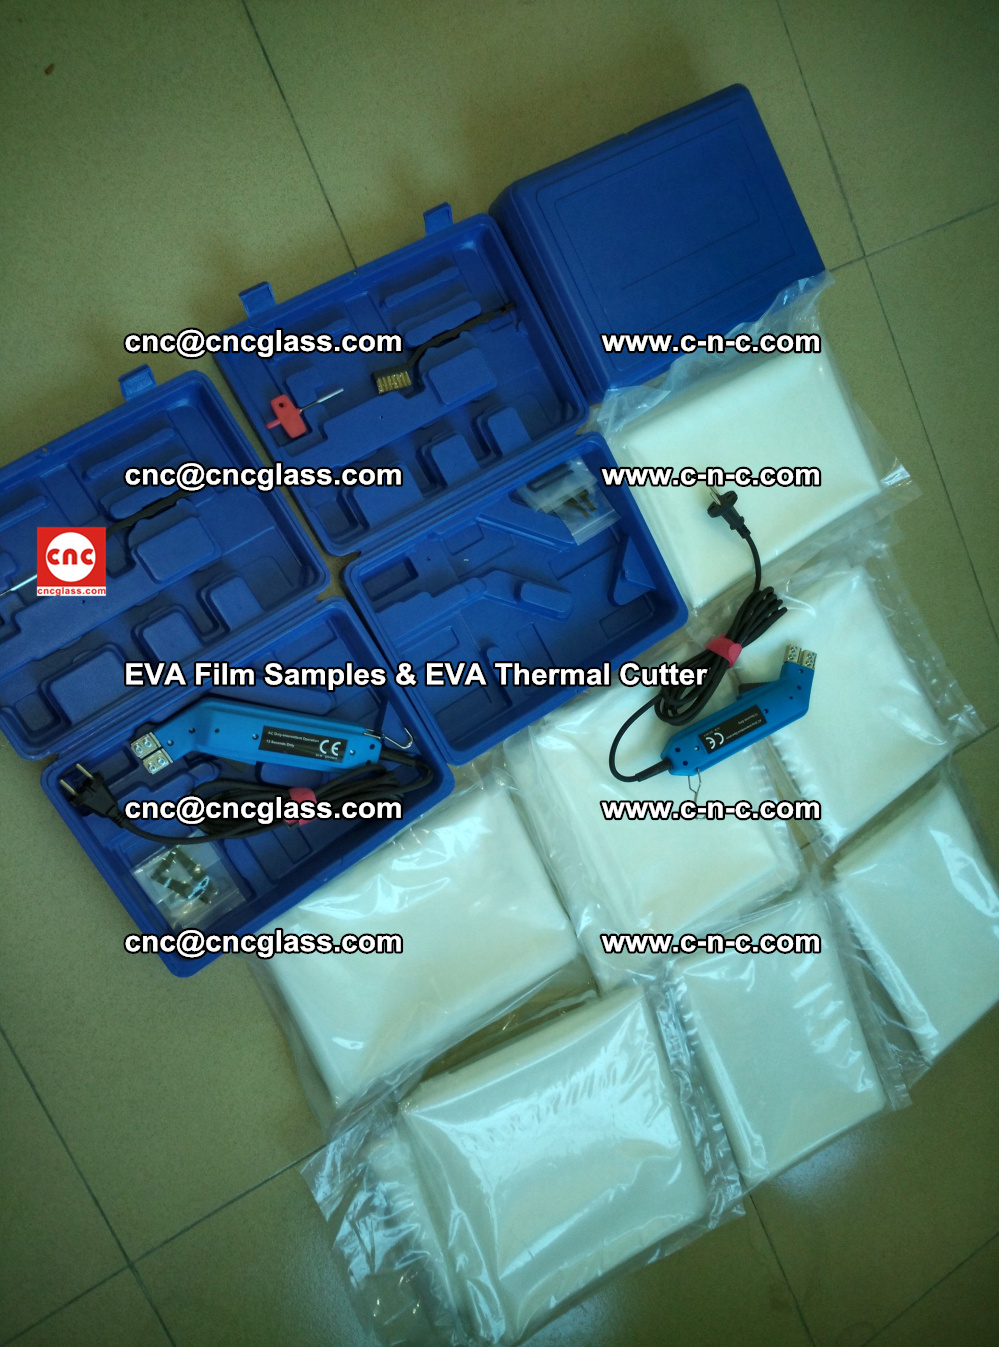 EVAFORCE SUPER CLEAR EVA Film Samples and EVA Thermal Cutter (15)